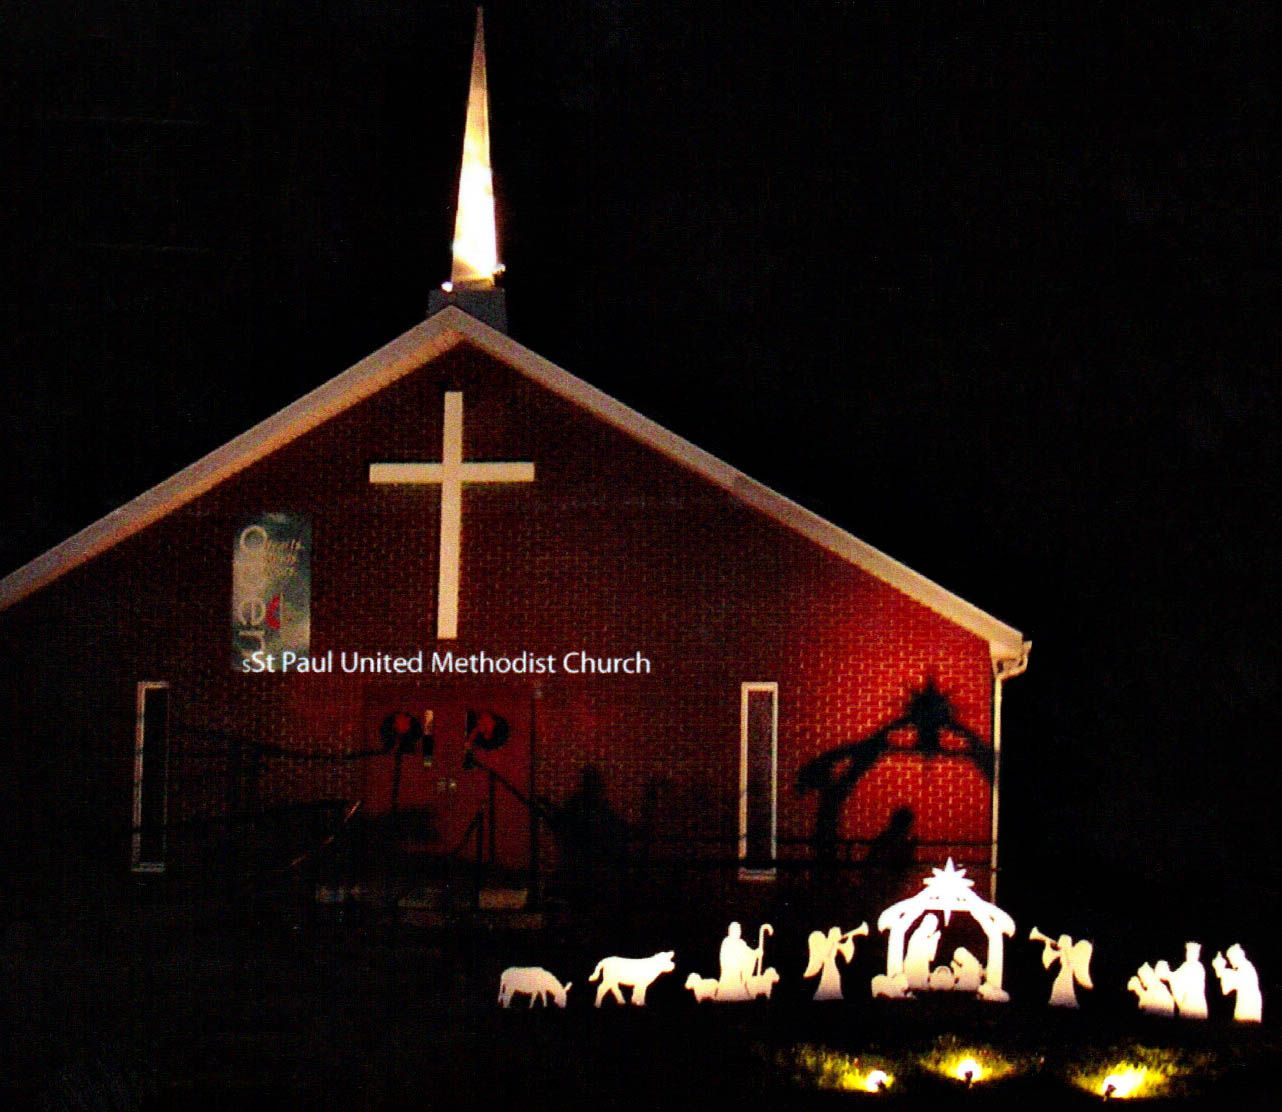 Our Large Nativity Set Is Perfect For Churches To Display During The Holidays Large Nativity Sets Nativity Set Methodist Church